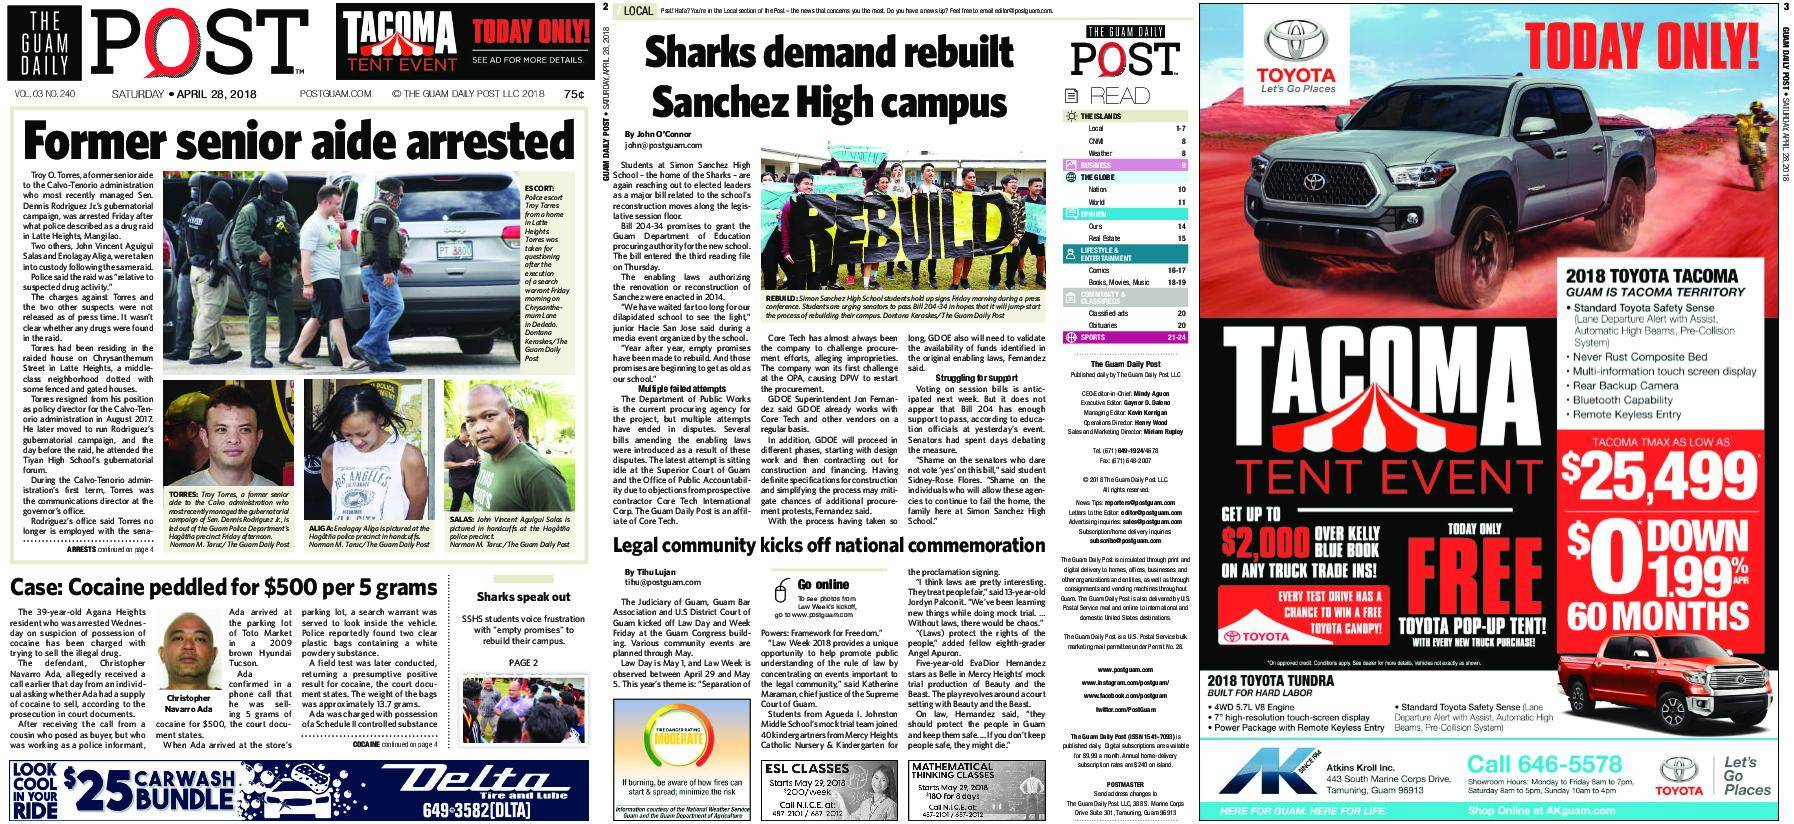 The Guam Daily Post – April 28, 2018